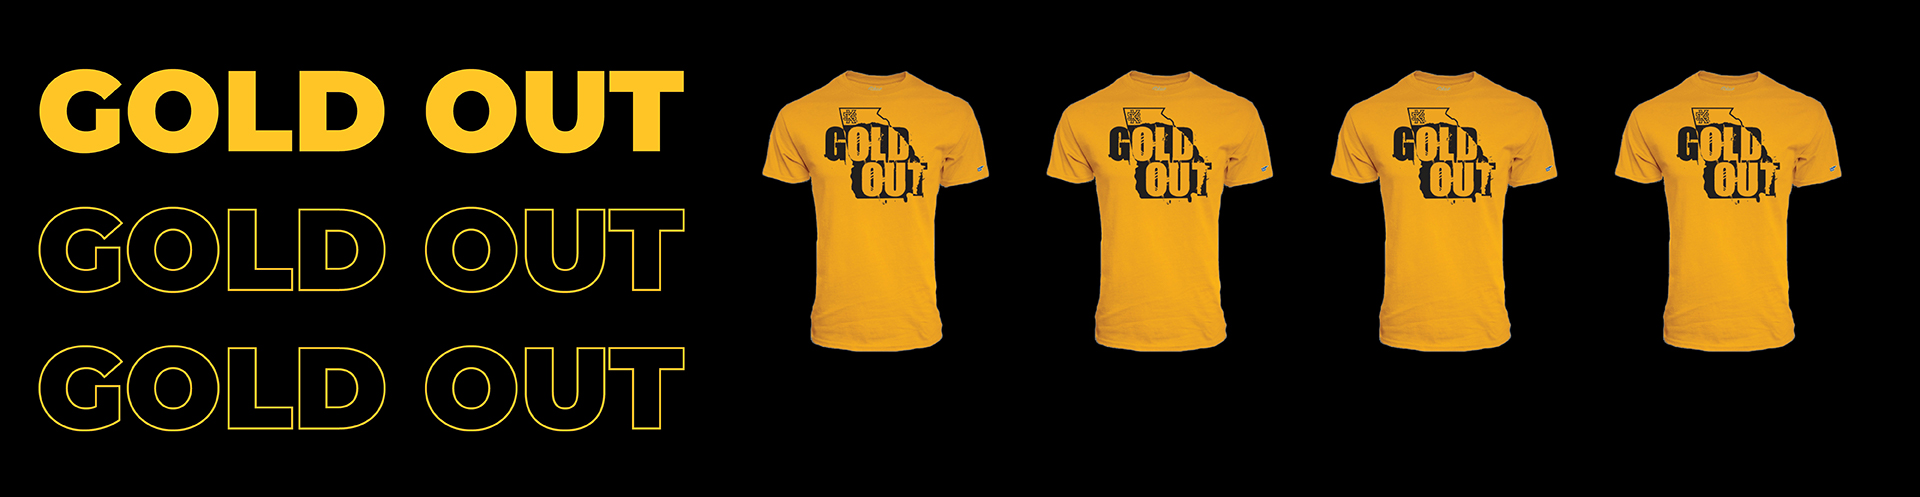 Gold Out T-Shirts are now available for purchase.